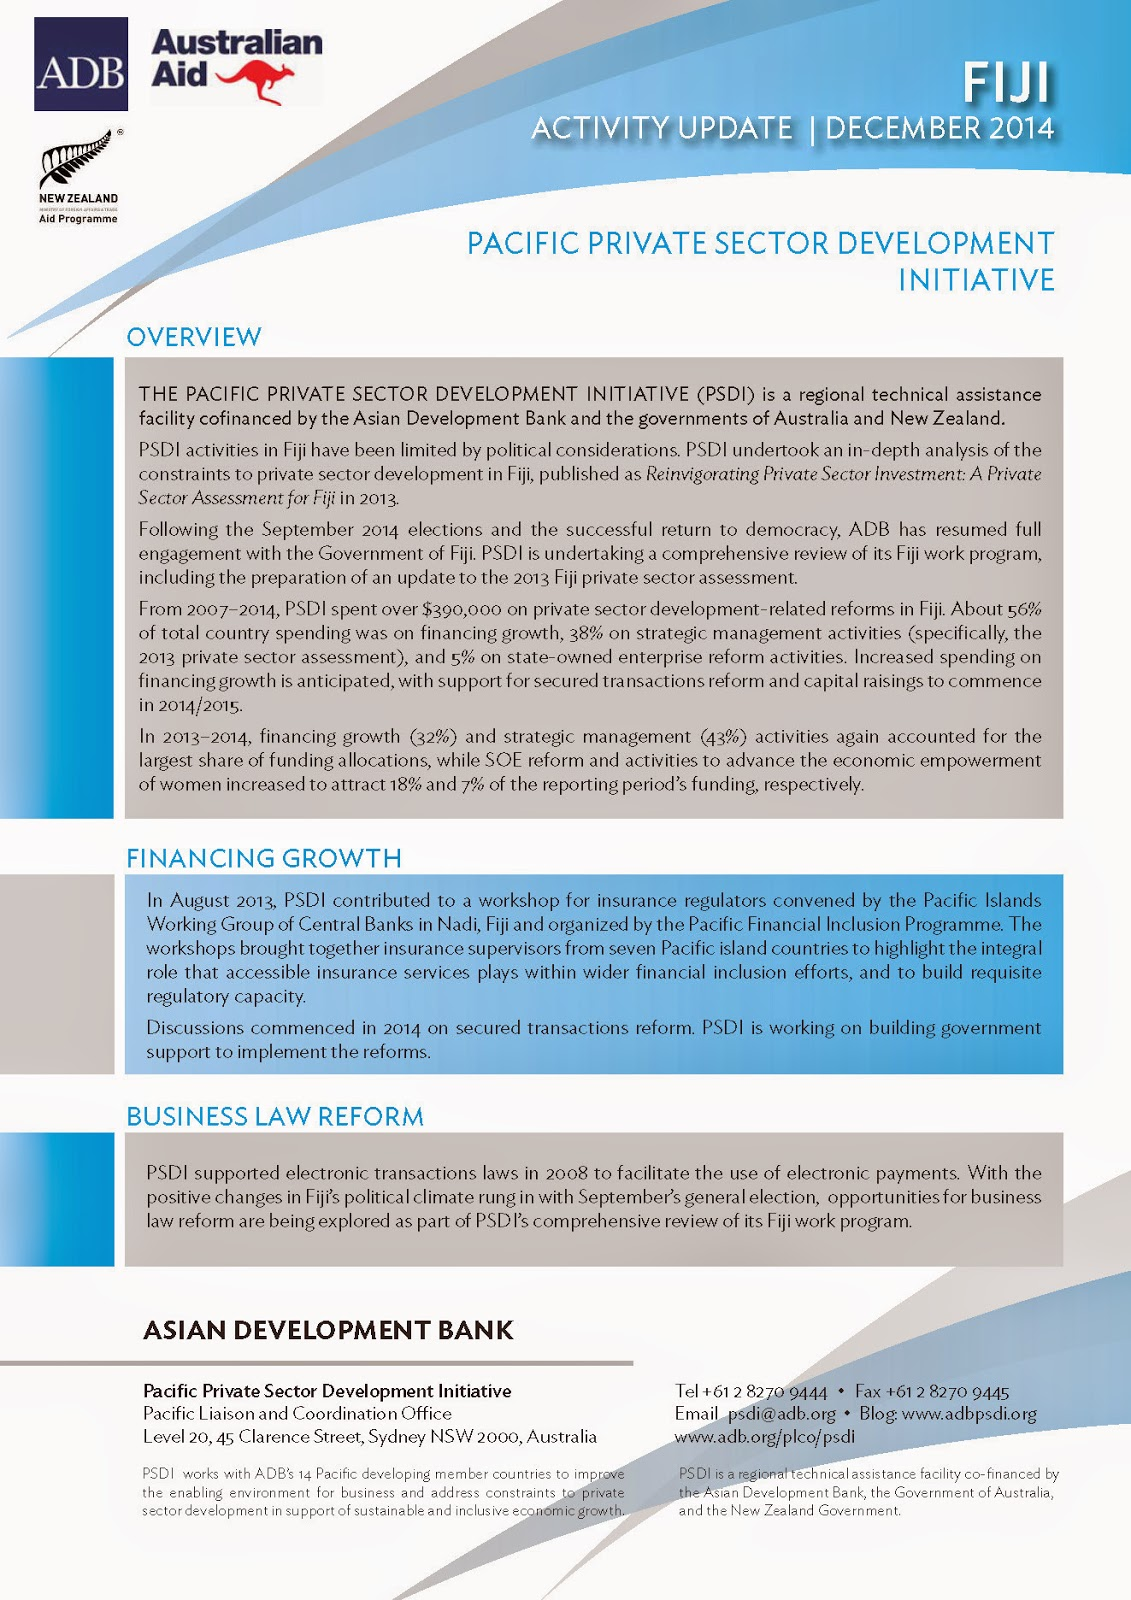 PACIFIC PRIVATE SECTOR DEVELOPMENT INITIATIVE: What is PSDI doing in